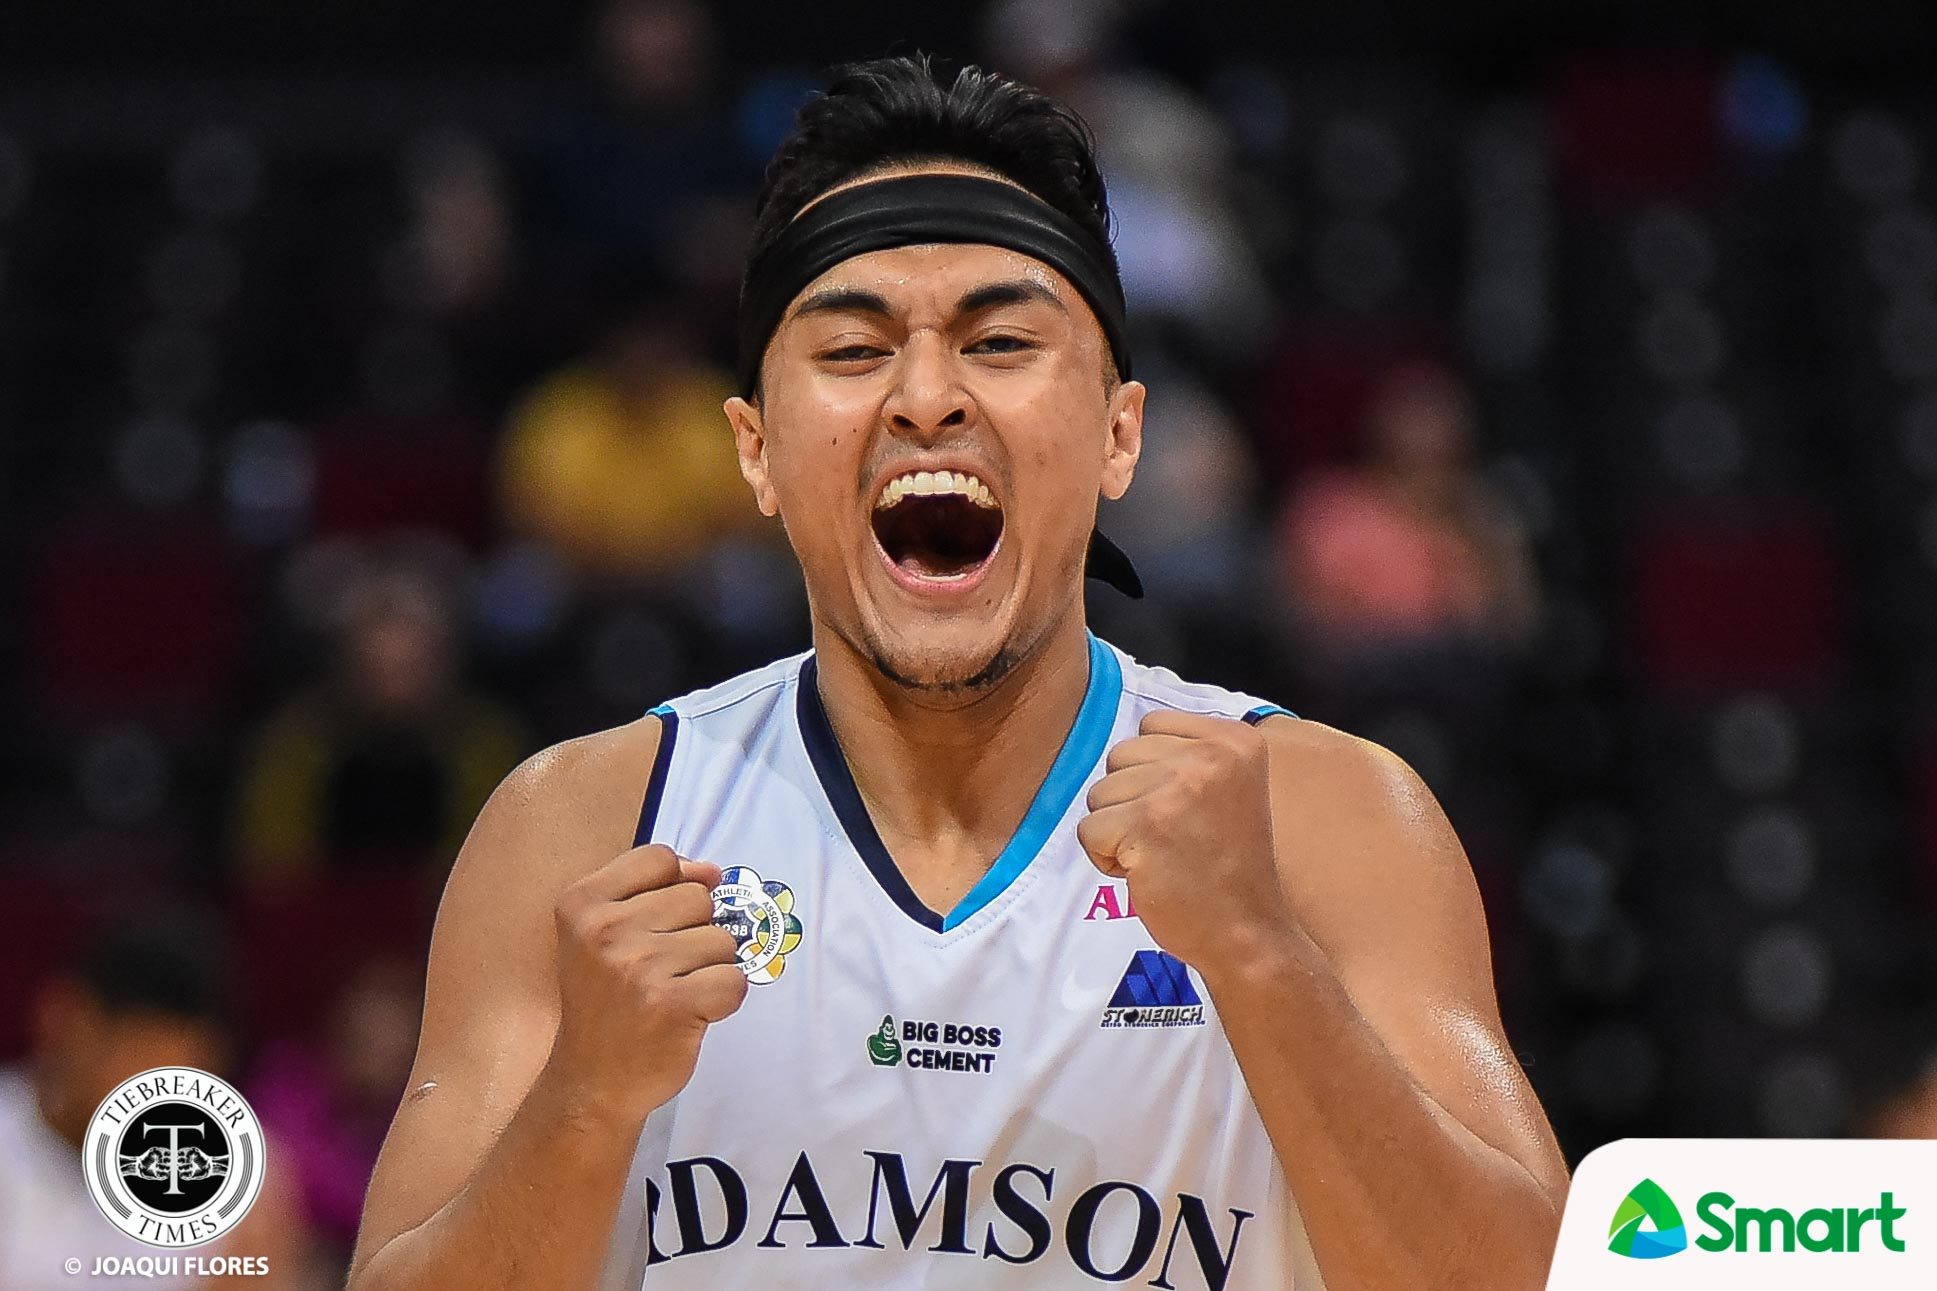 Tiebreaker Times Chauca downplays bane role to UST, just relishing short time with Adamson AdU Basketball News UAAP  valendre chauca UAAP Season 82 Men's Basketball UAAP Season 82 Adamson Men's Basketball